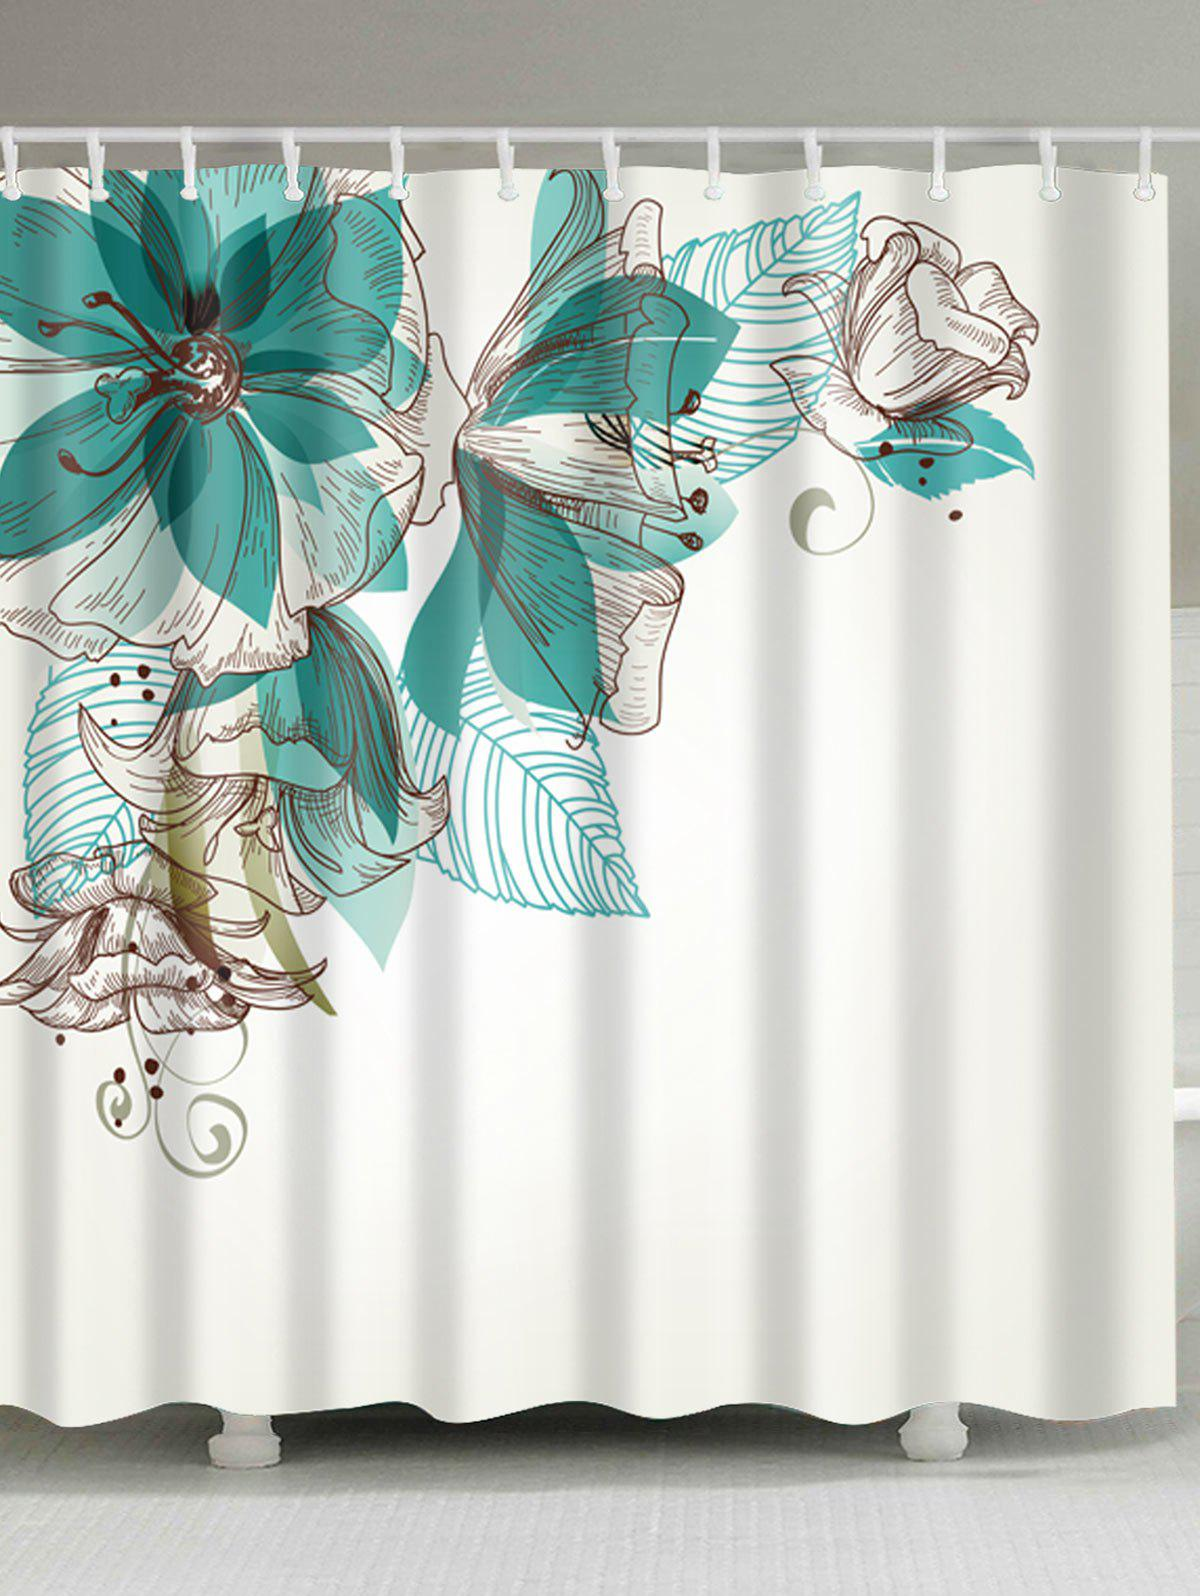 Concise Floral Fabric Extra Long Shower Curtain